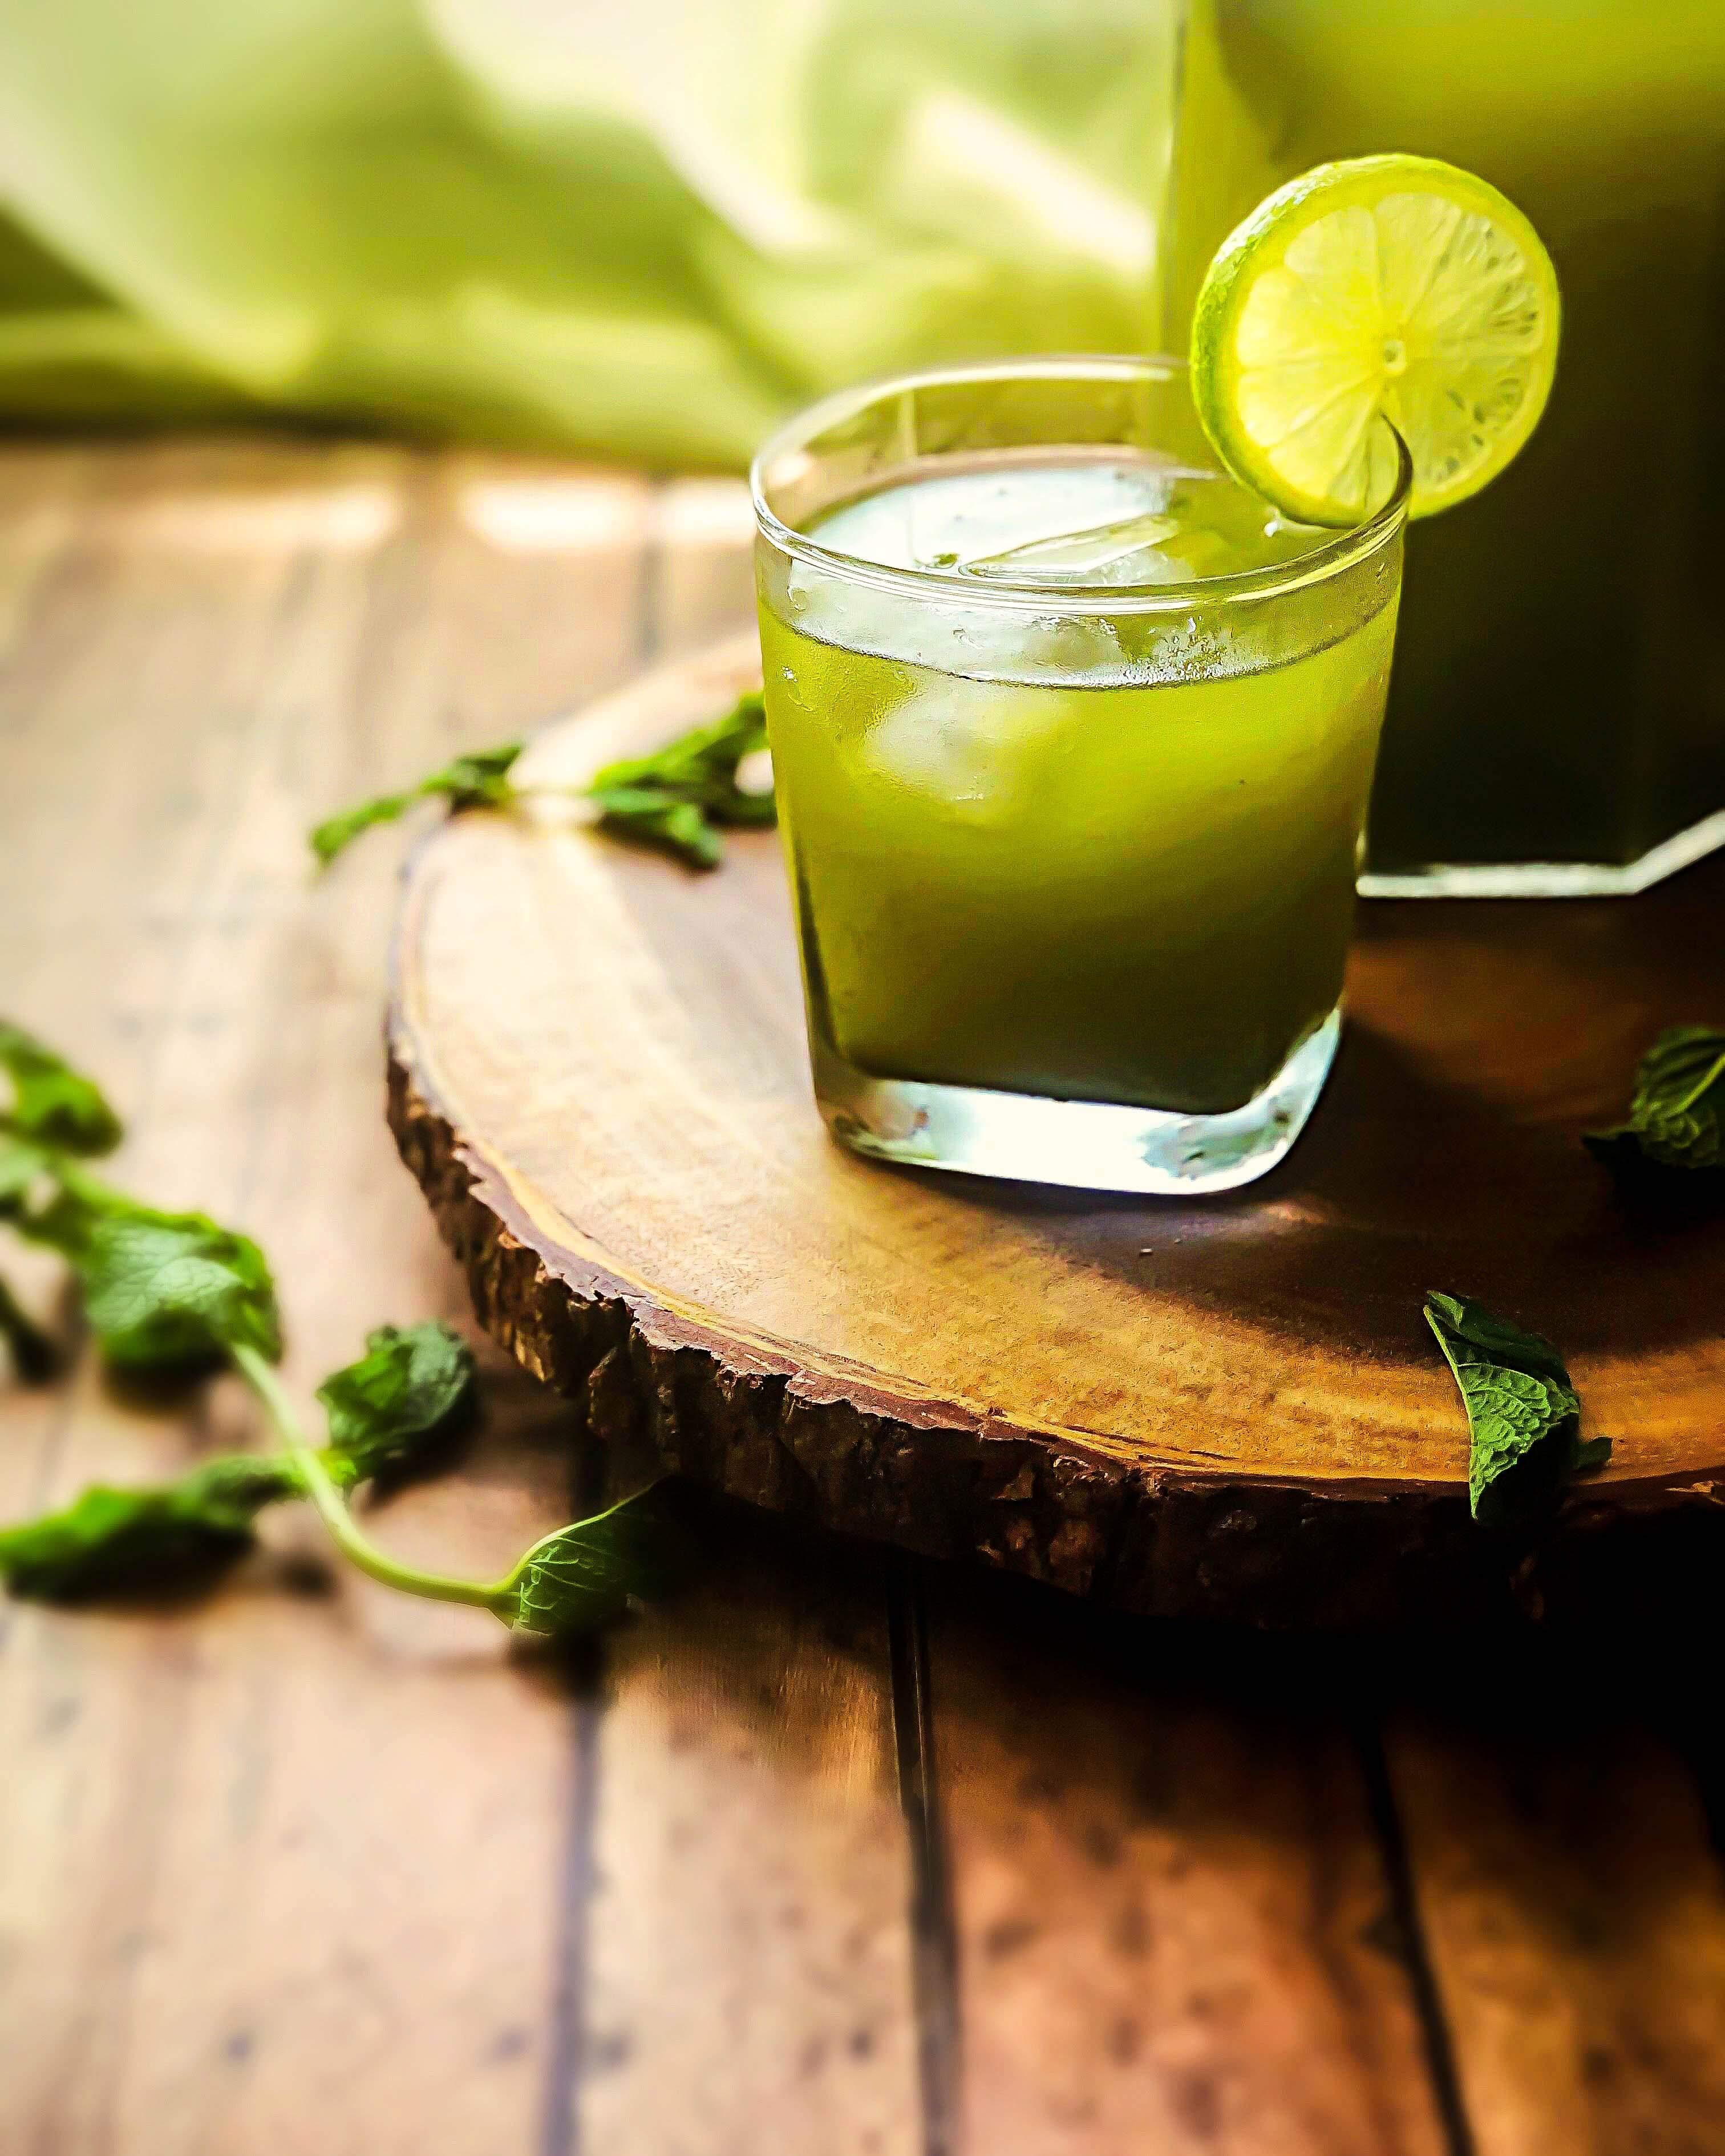 Discussion on this topic: How to Make Pudina Sharbat (Mint Juice), how-to-make-pudina-sharbat-mint-juice/